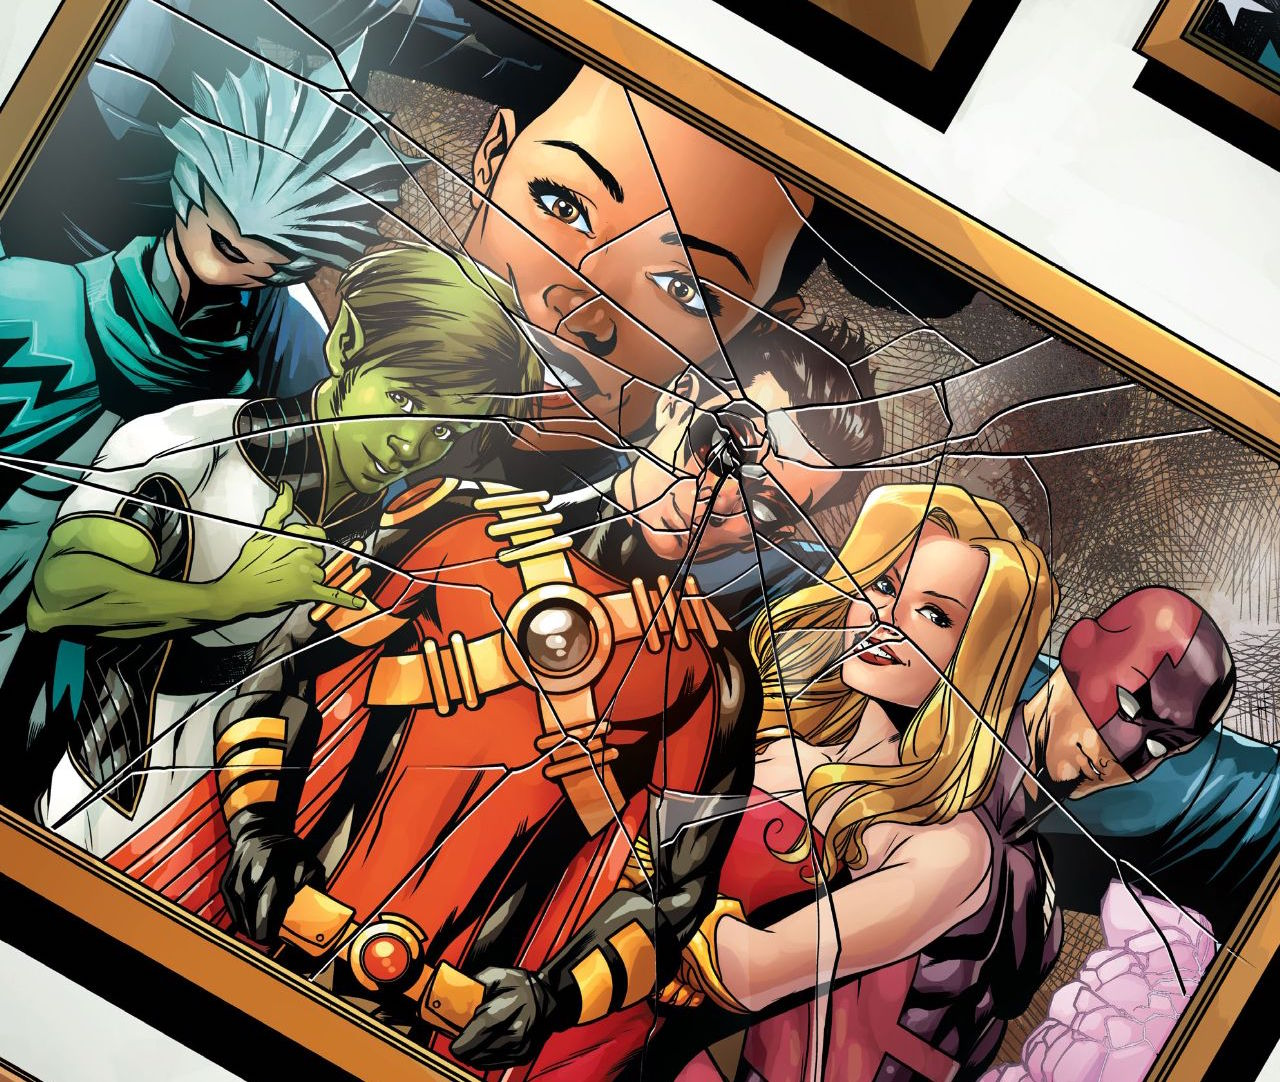 This is it folks, the last issue in the 24 issue Teen Titans run, as the team is disbanding. If you don't want to be spoiled I'd advise you to read Detective Comics #940 first! Let's say goodbye and answer the question, is it good?